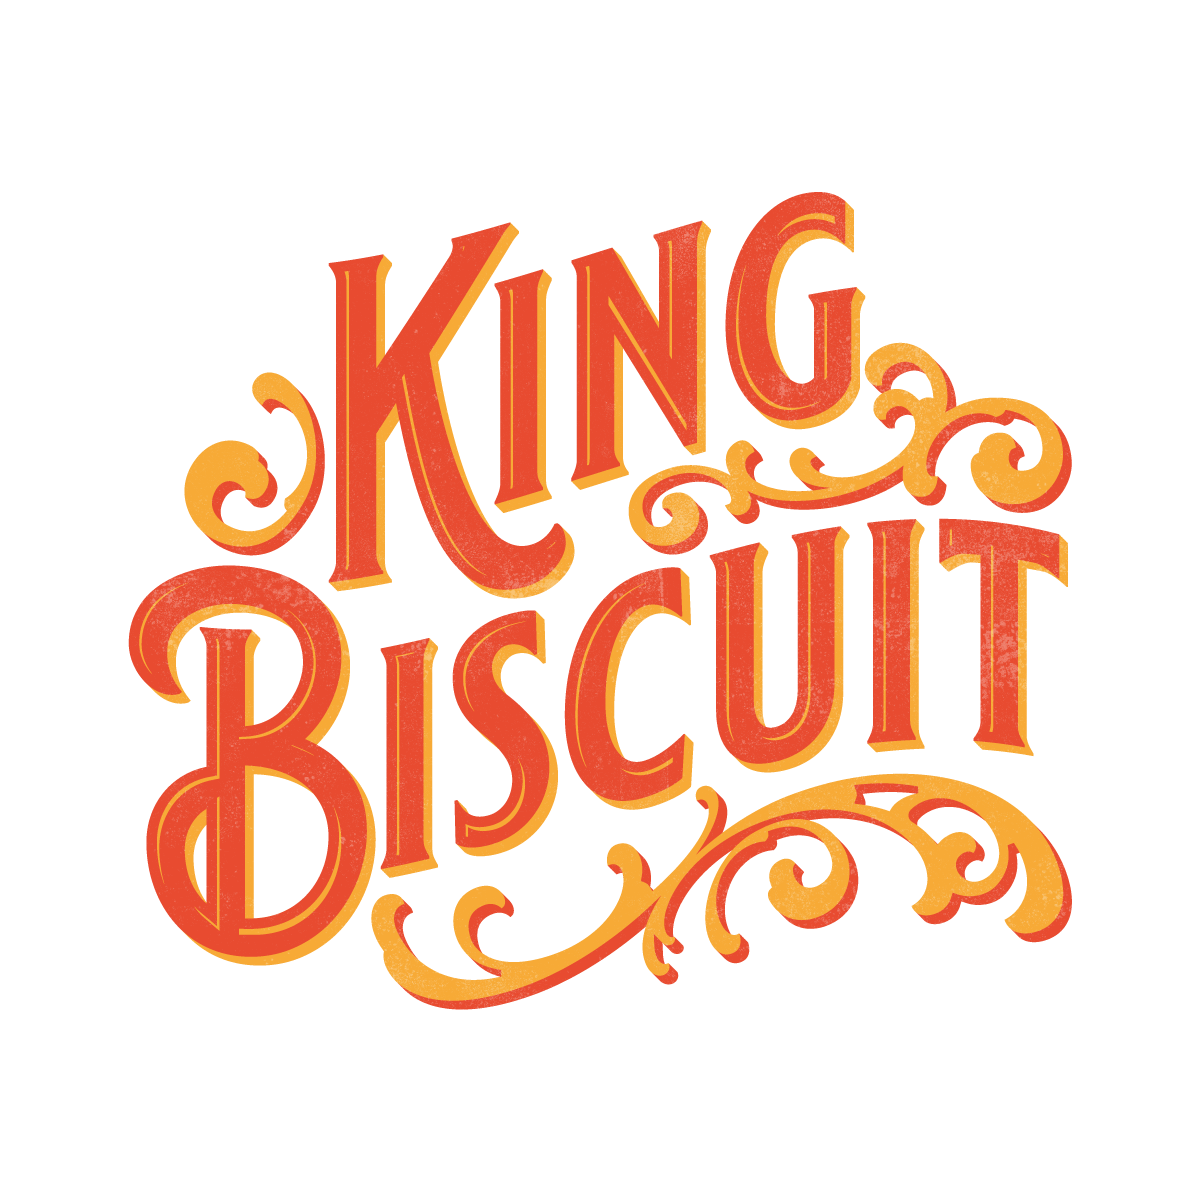 Biscuits!  I need an old school, timeless logo for my new food cart.